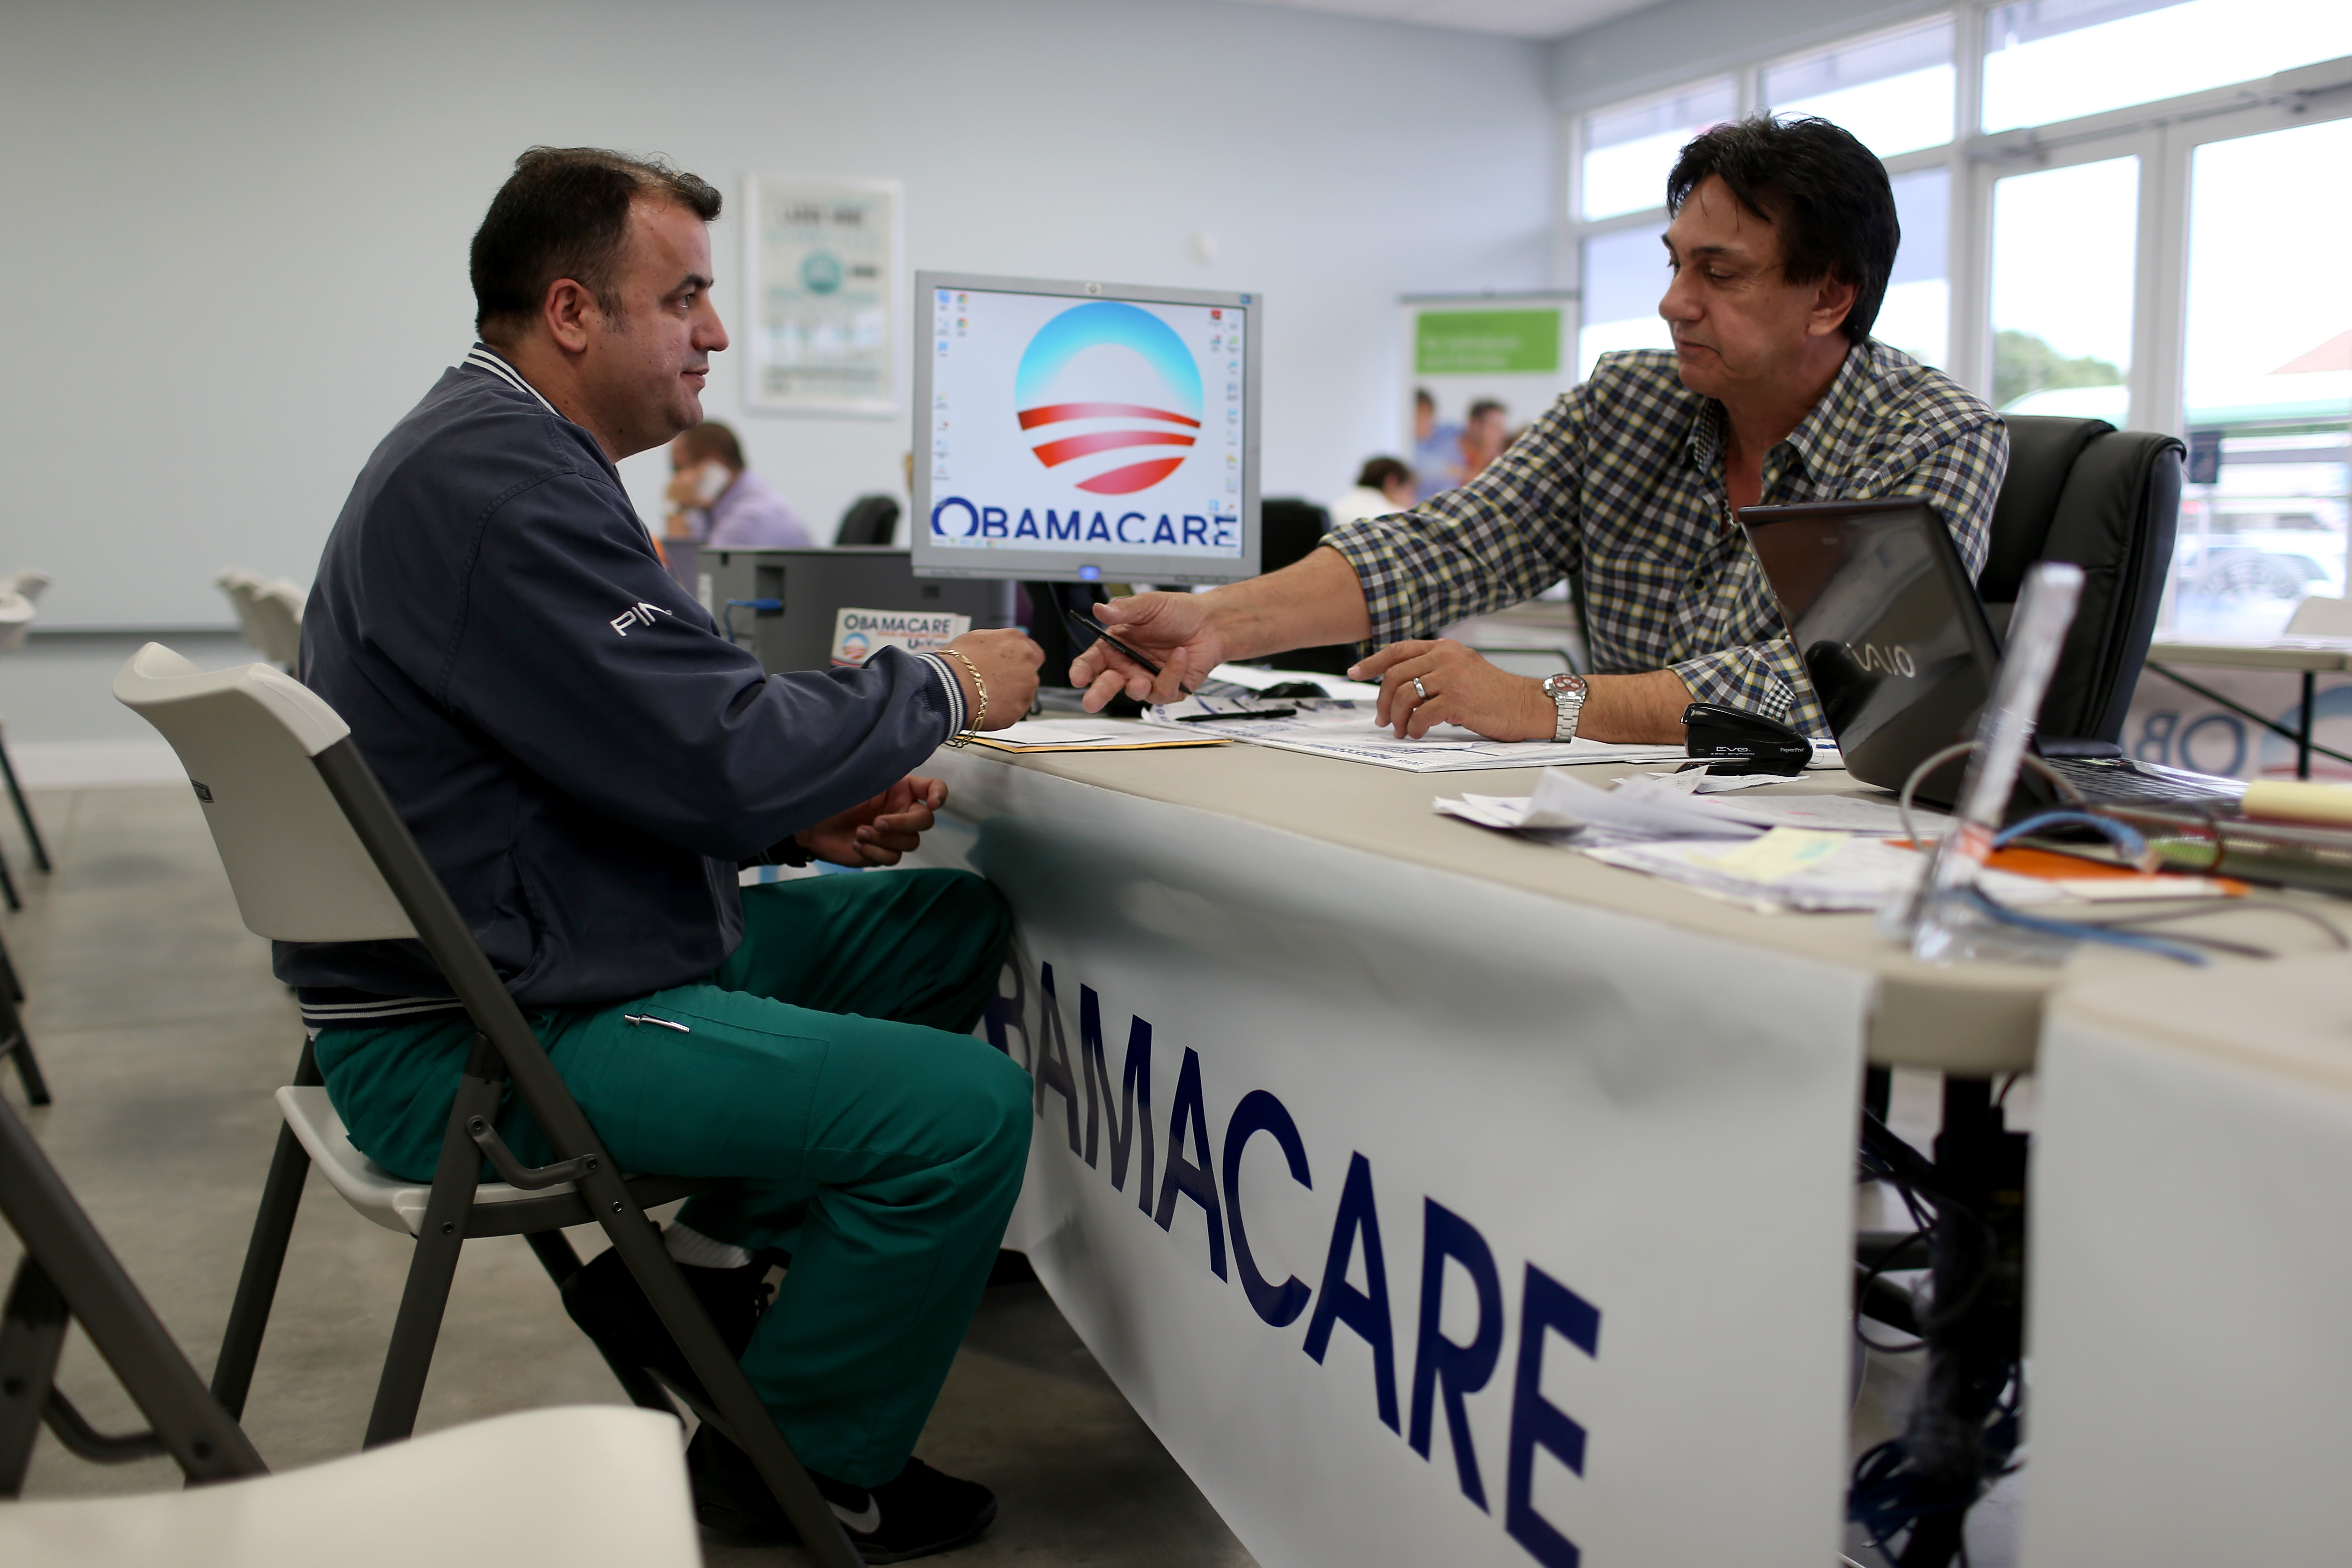 What are other names for the health care reform, for example: health insurance reform, Obamacare.. Any more?